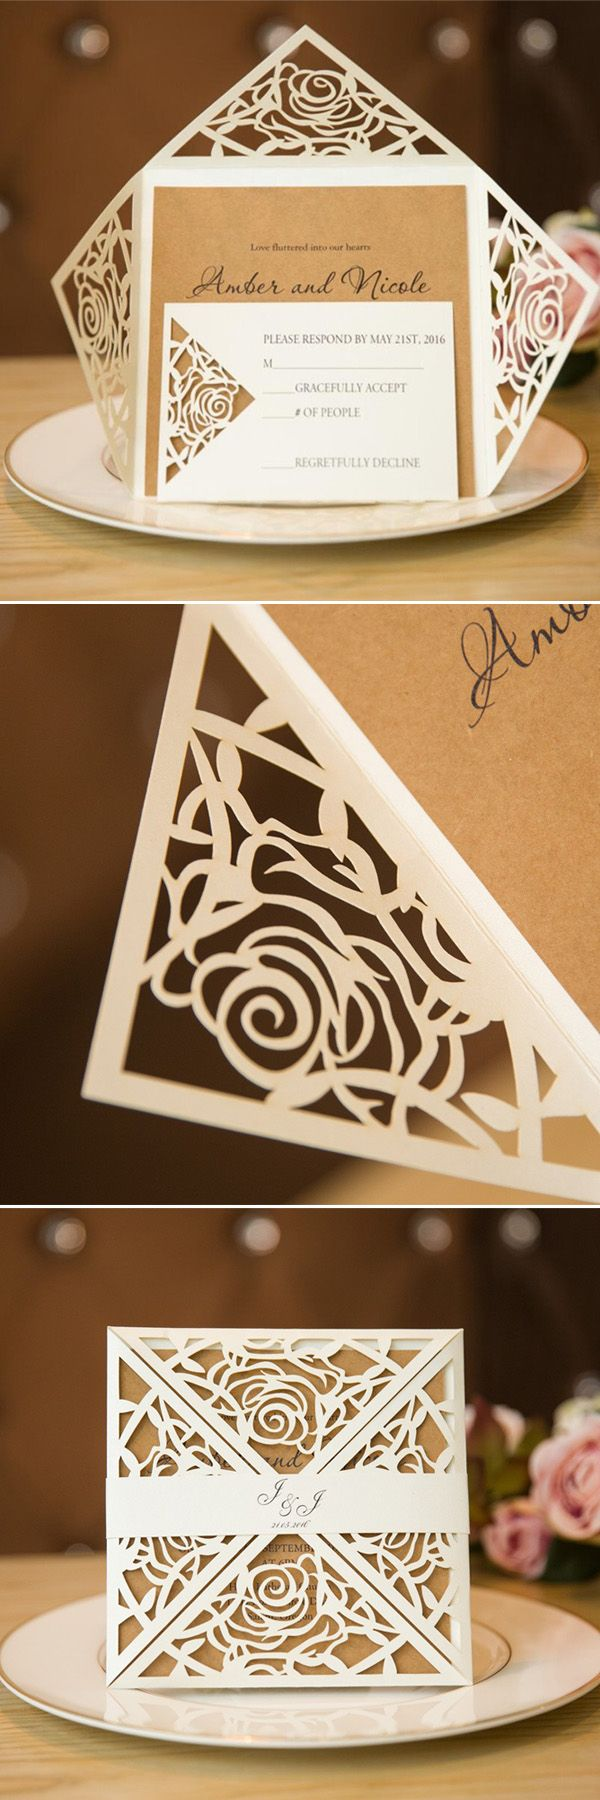 39 Best Laser Cut Wedding Invitations Images On Pinterest